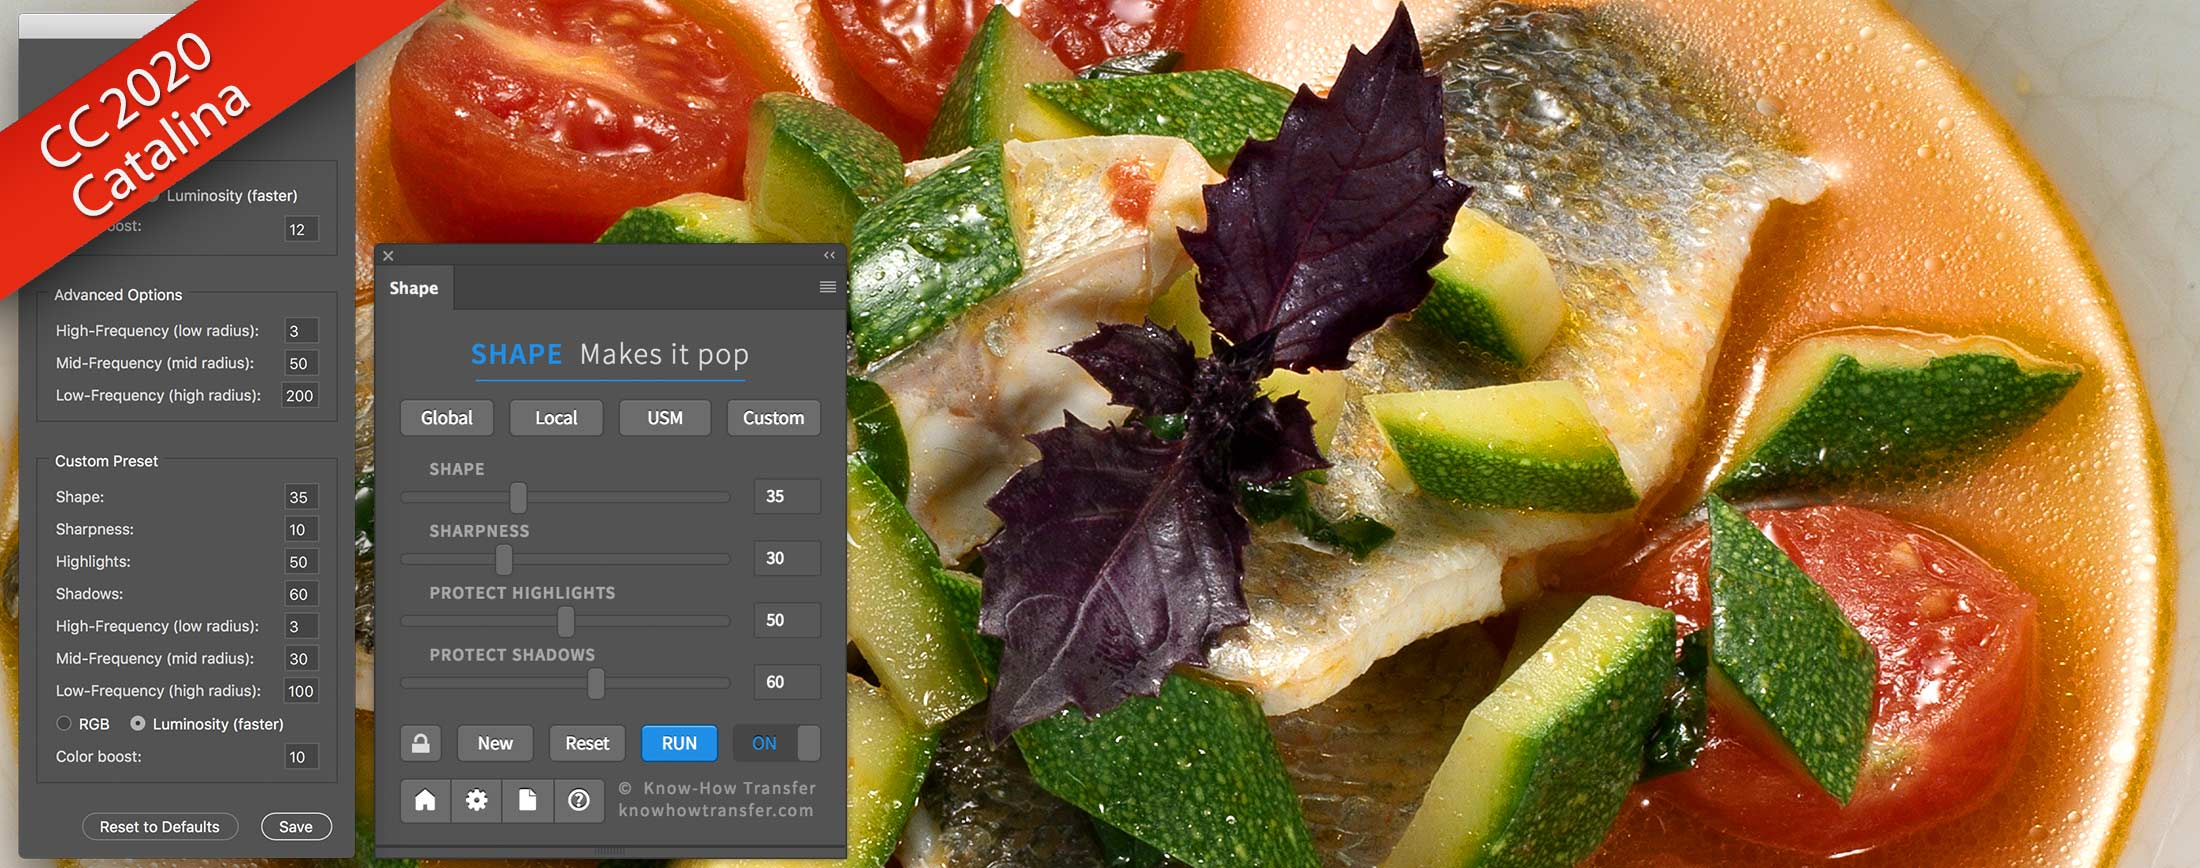 Shape Plugin for Photoshop Interface and Prefernces window plus a sample of Shape appliedC